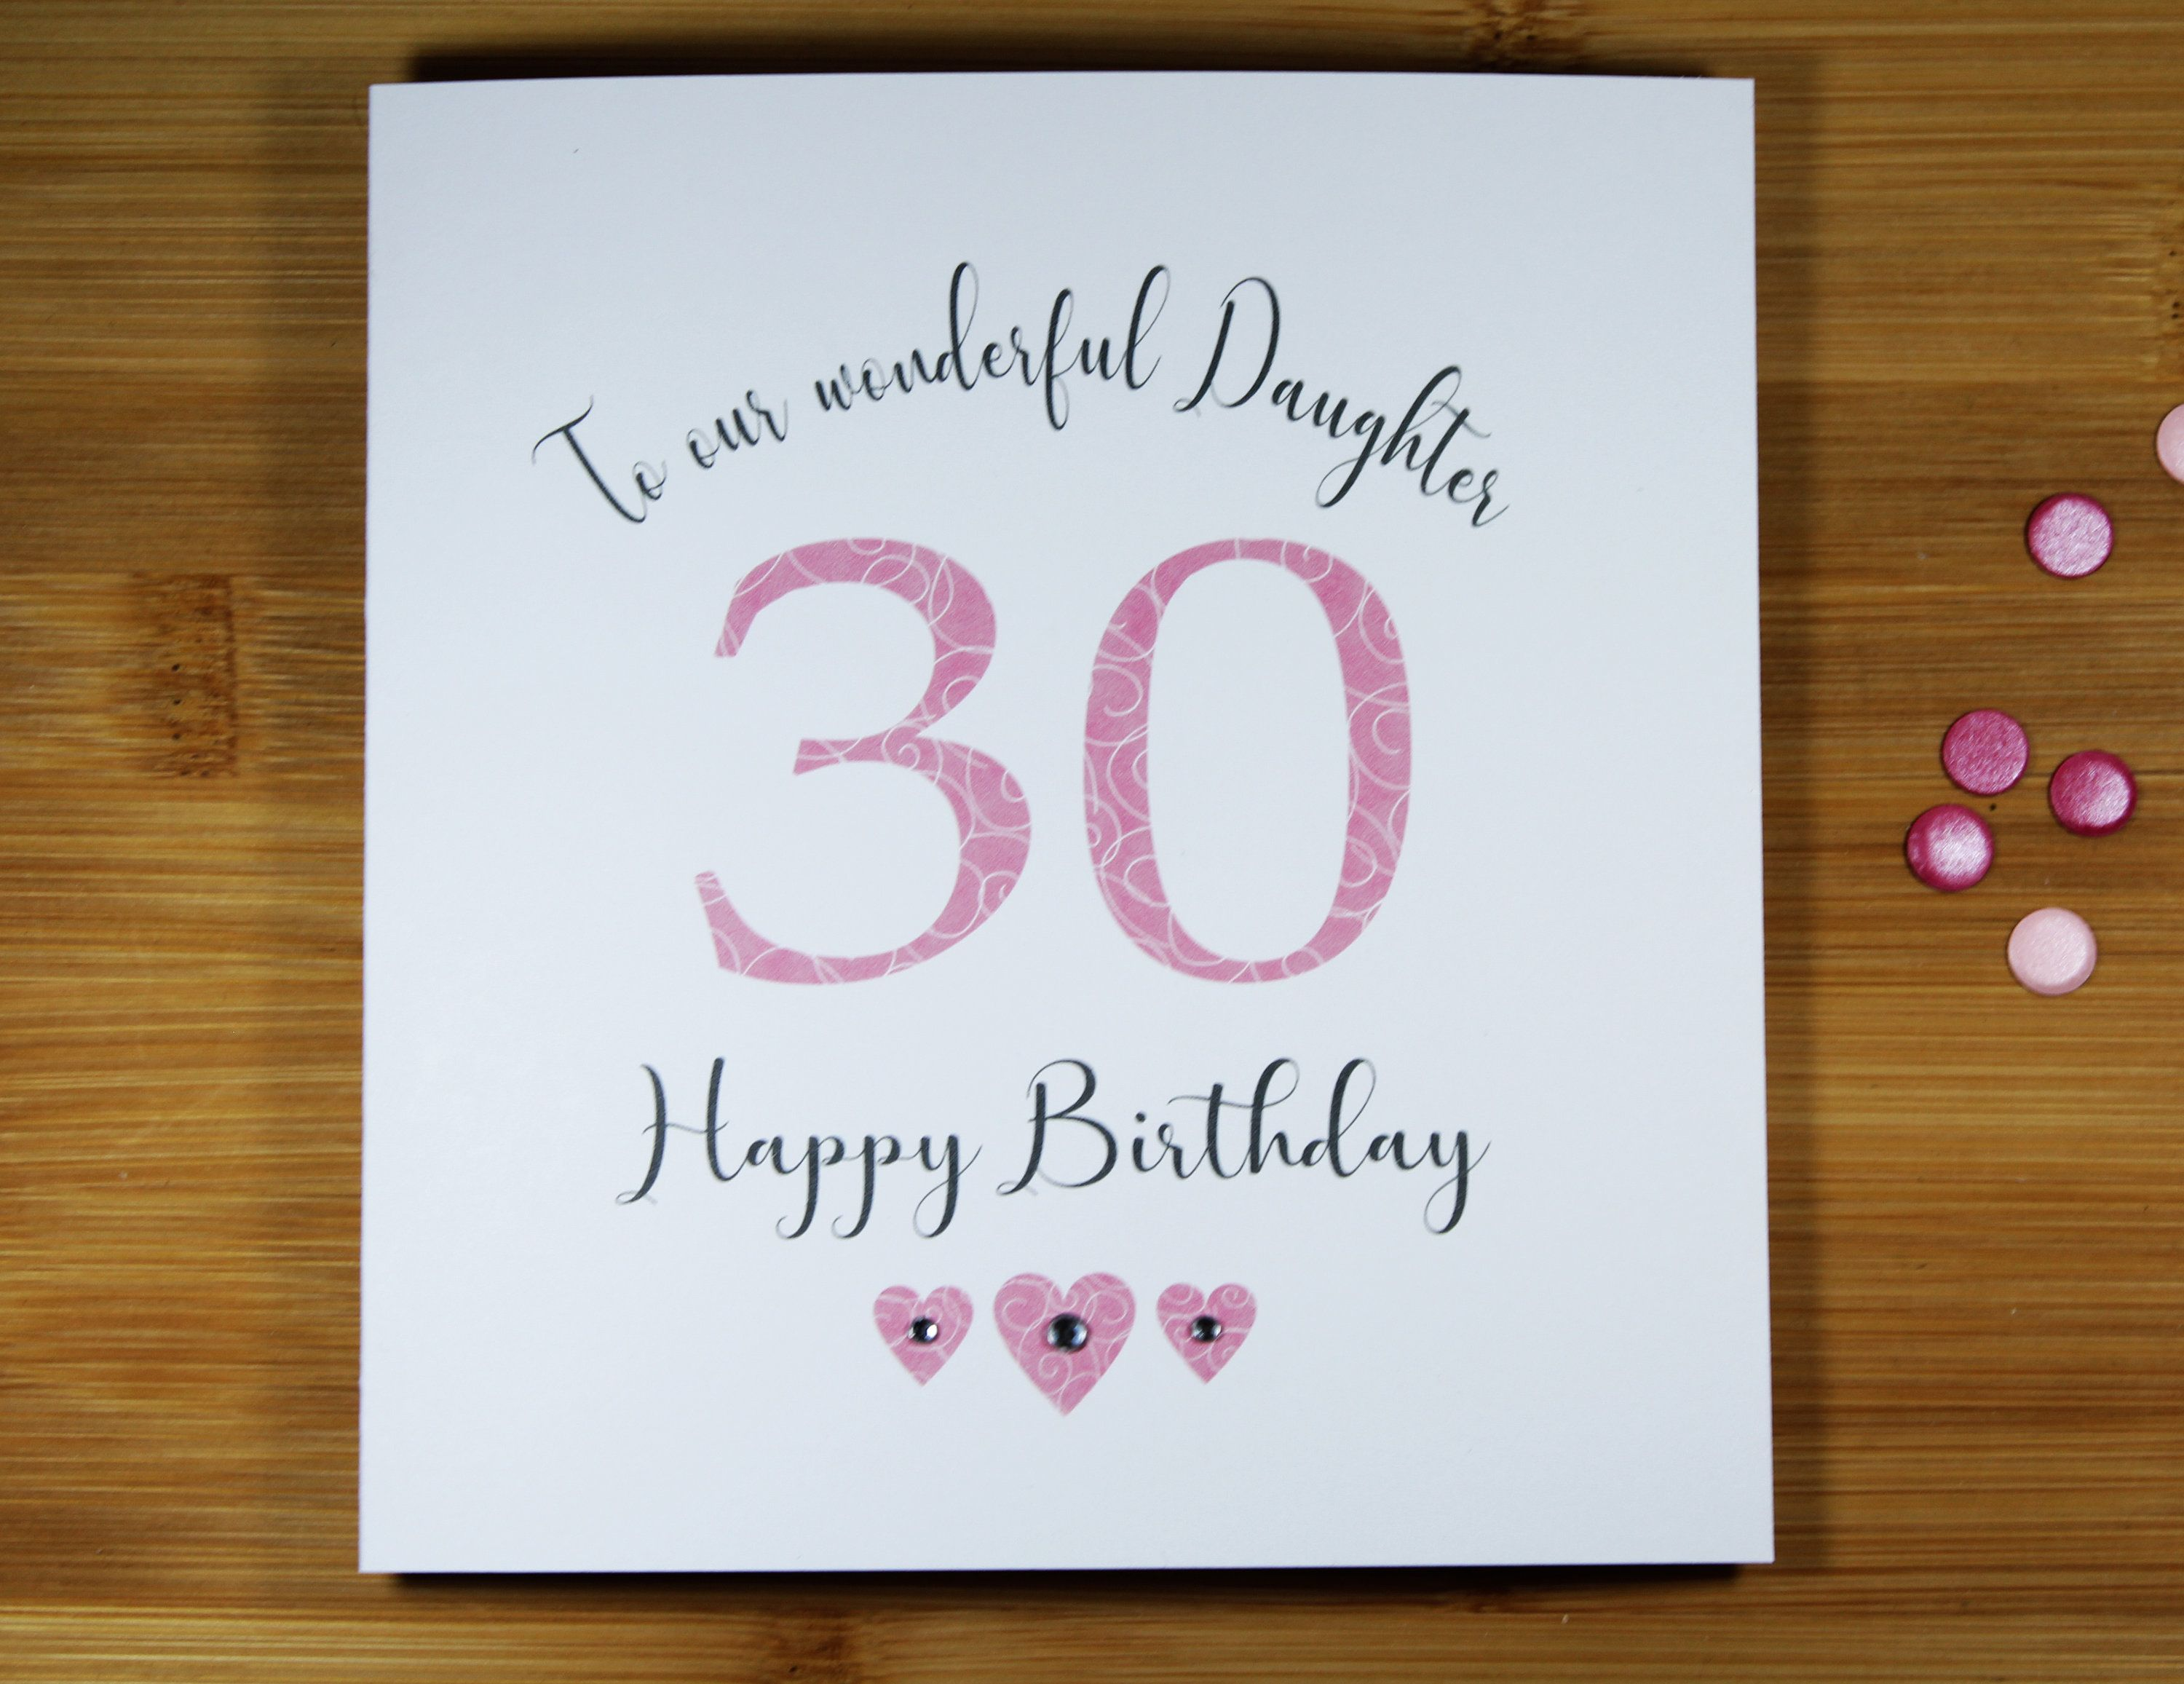 30th Birthday Card Daughter Mum Wife Sister Cousin Etsy 30th Birthday Cards Birthday Cards For Her Birthday Cards